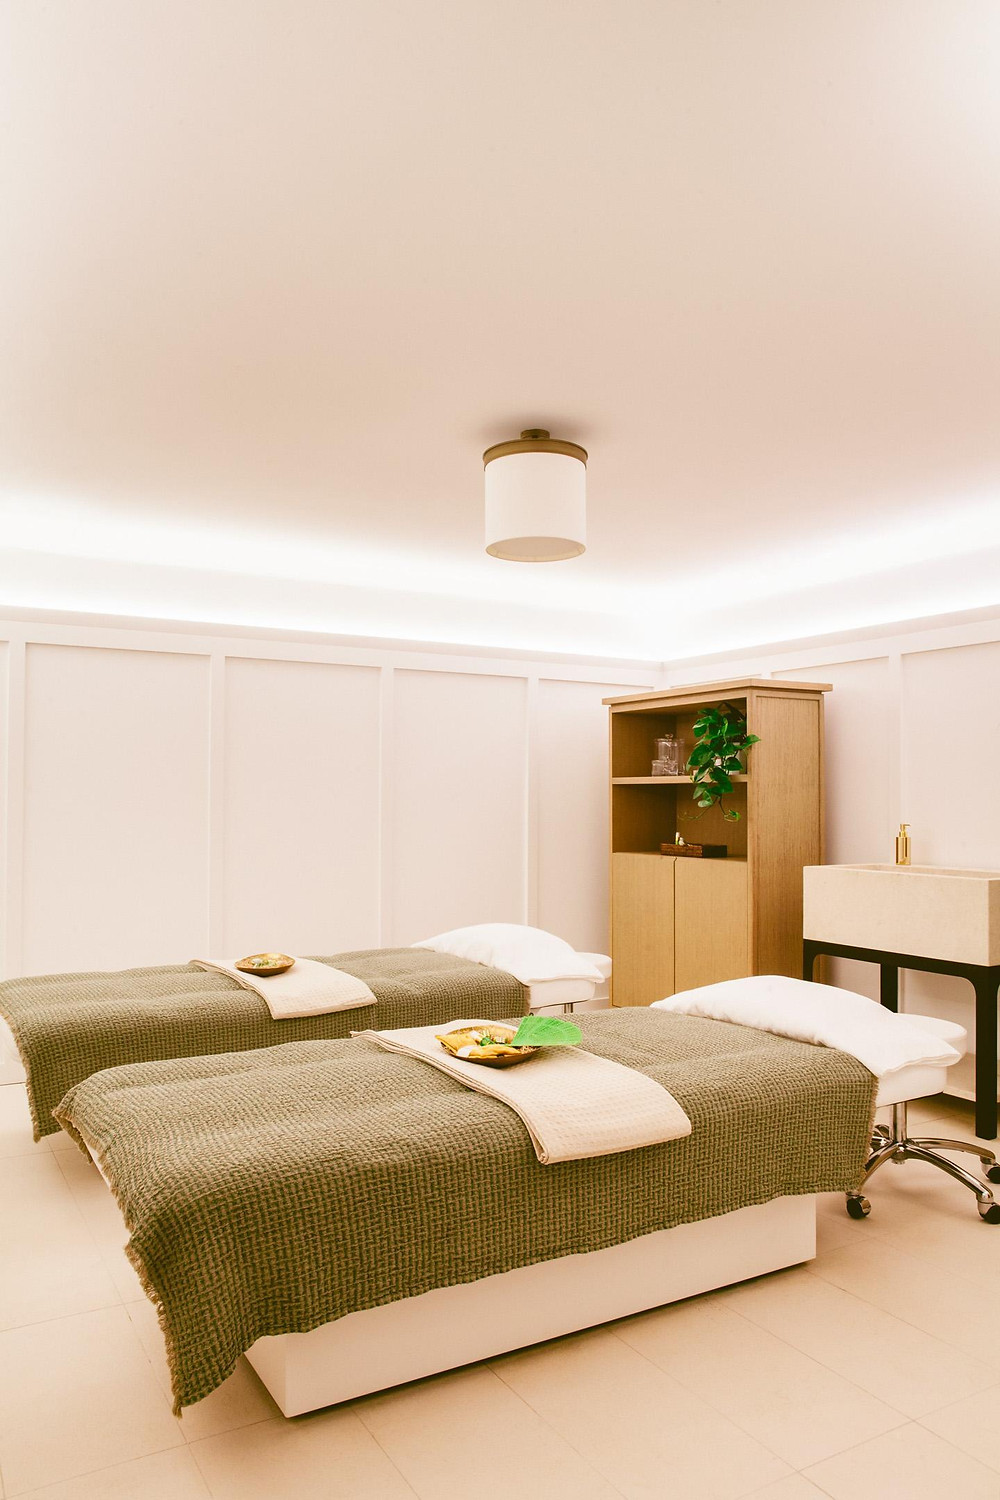 The spa at the Hotel Lou Pinet.